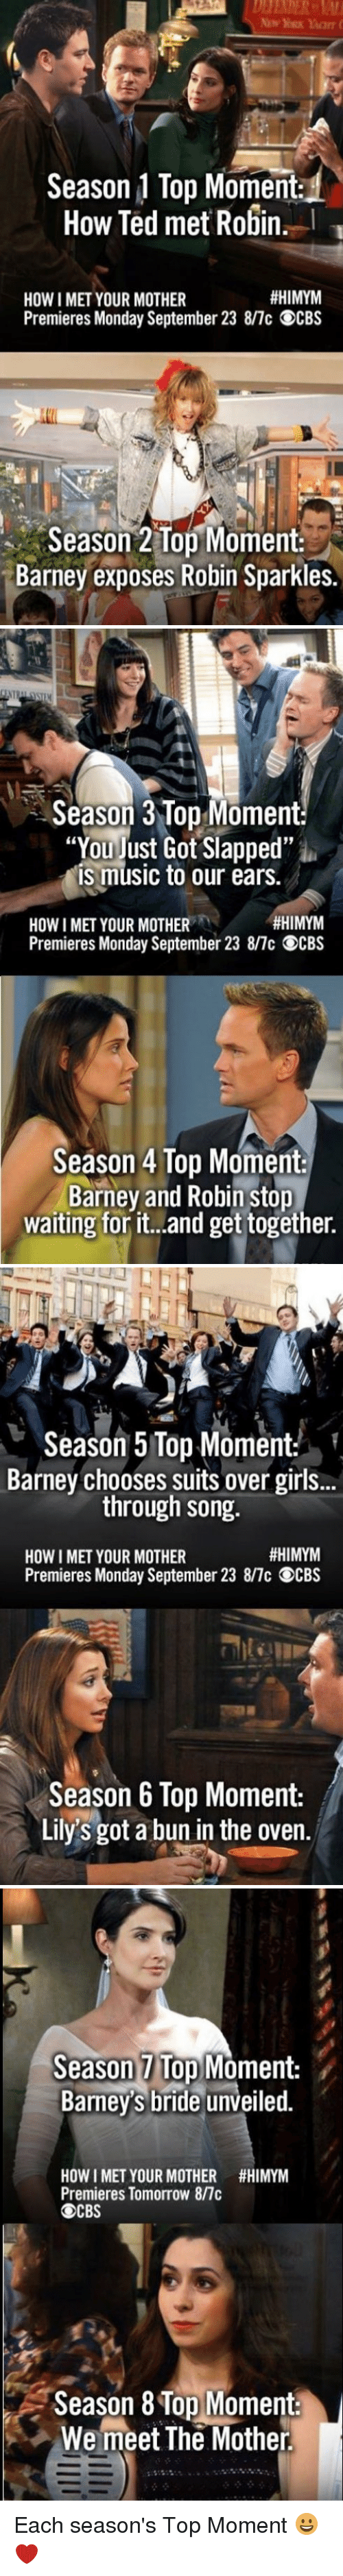 """Barney, Girls, and Memes: Season 1 Top Moment  How Ted met Robin.  #HIMYM  HOW I MET YOUR MOTHER  Premieres Monday September 23 8/7c OCBS  Season 2 Top Moment  Barney exposes Robin Sparkles.   Season 3 Top Moment:  """"You just Got Slapped""""  is music to our ears.  #HIMYM  HOWI MET YOUR MOTHER  Premieres Monday September 23 8/7c OCBS  Season 4 Top Moment  Barney and Robin stop  waiting for it...and get together.   Season 5 Top Moment  Barney chooses suits over girls..  through song.  #HIMYM  HOW I MET YOUR MOTHER  Premieres Monday September 23 8/7c OCBS  Season 6 Top Moment:  Lily's got a bun in the oven.   Season Top Moment:  Barney's bride unveiled.  HOW I MET YOUR MOTHER #HIMYM  Premieres Tomorrow 8/7c  CBS  Season 8 Top Moment:  We meet The Mother Each season's Top Moment 😀❤️"""